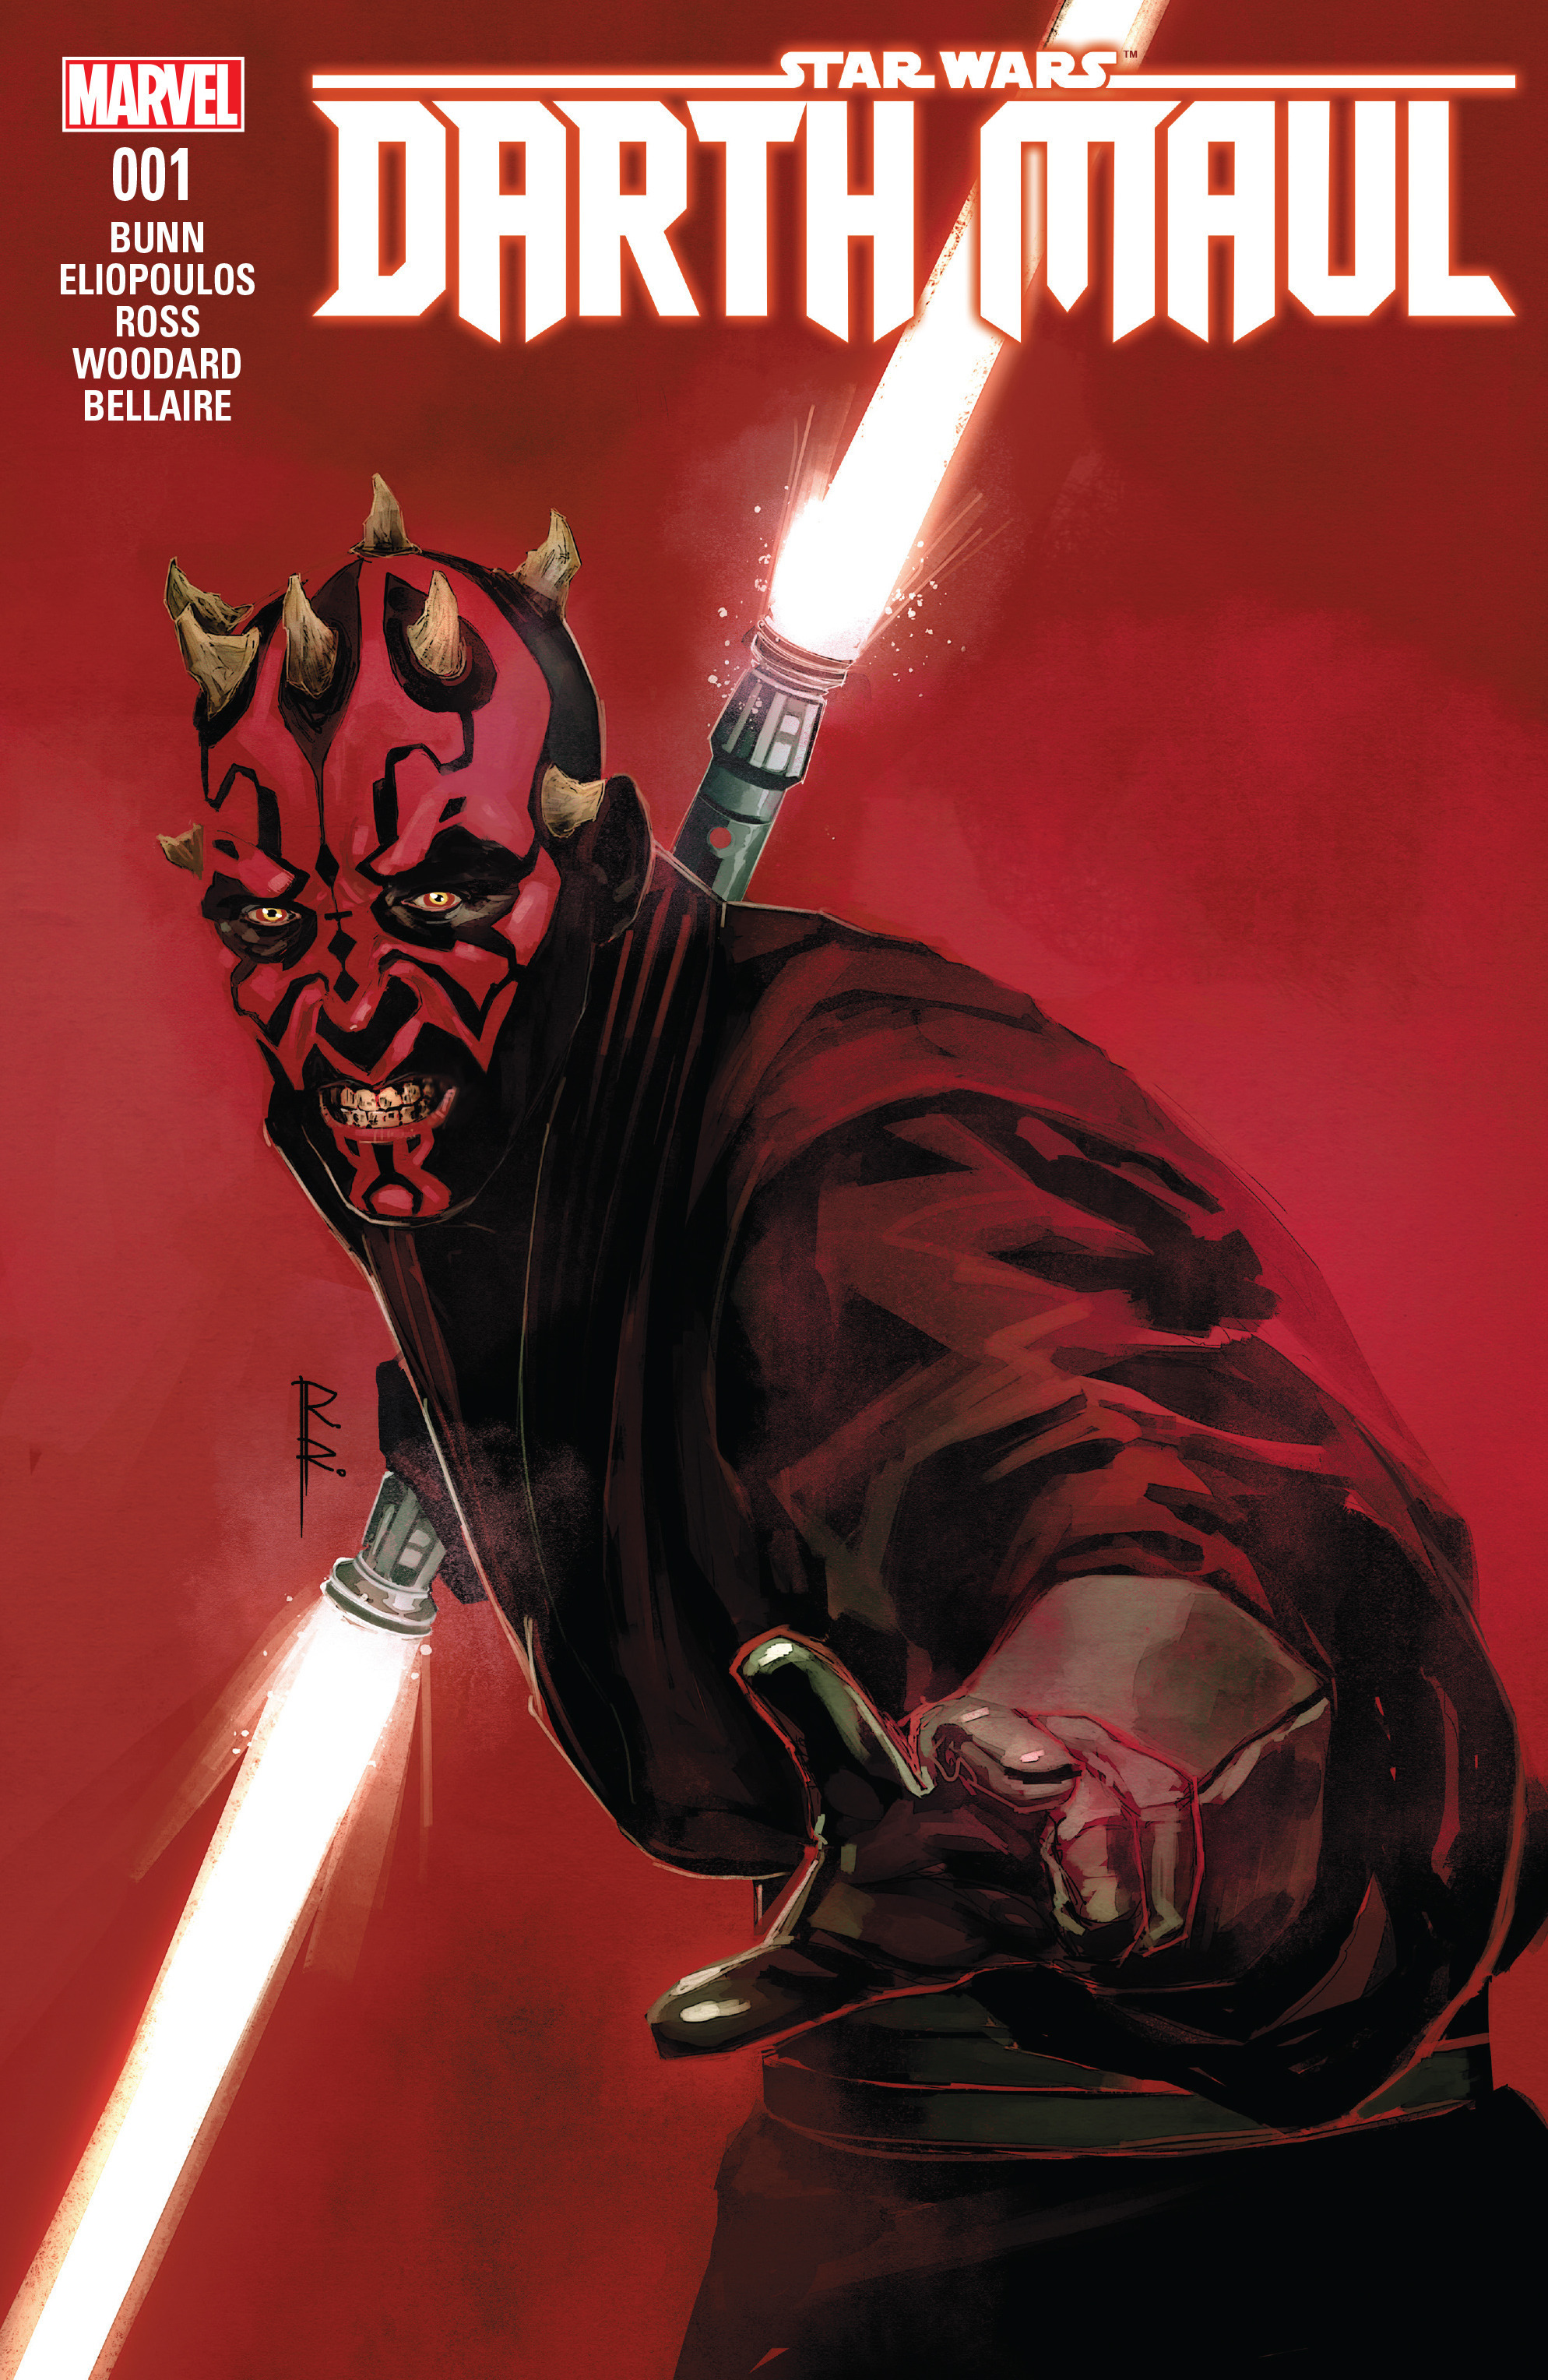 Image result for star wars marvel darth maul